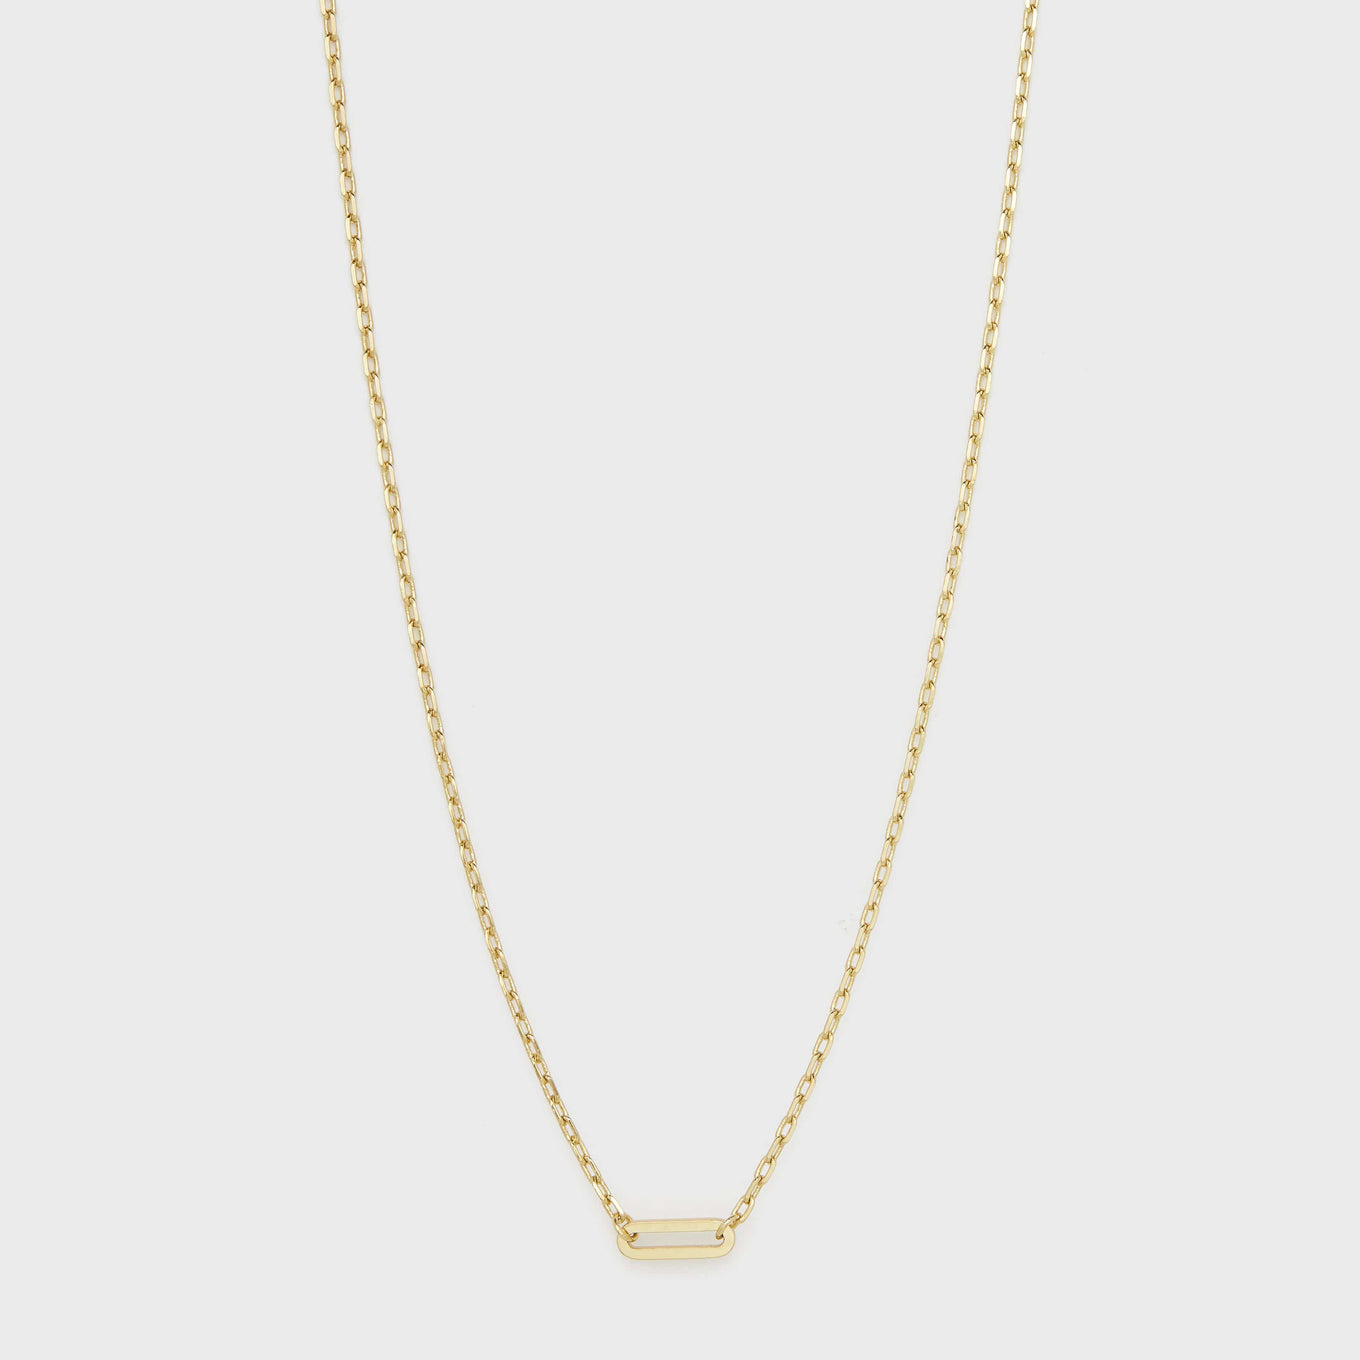 Gorjana Jewelry Gold Rectangle Charm Necklace, Parker Charm Necklace